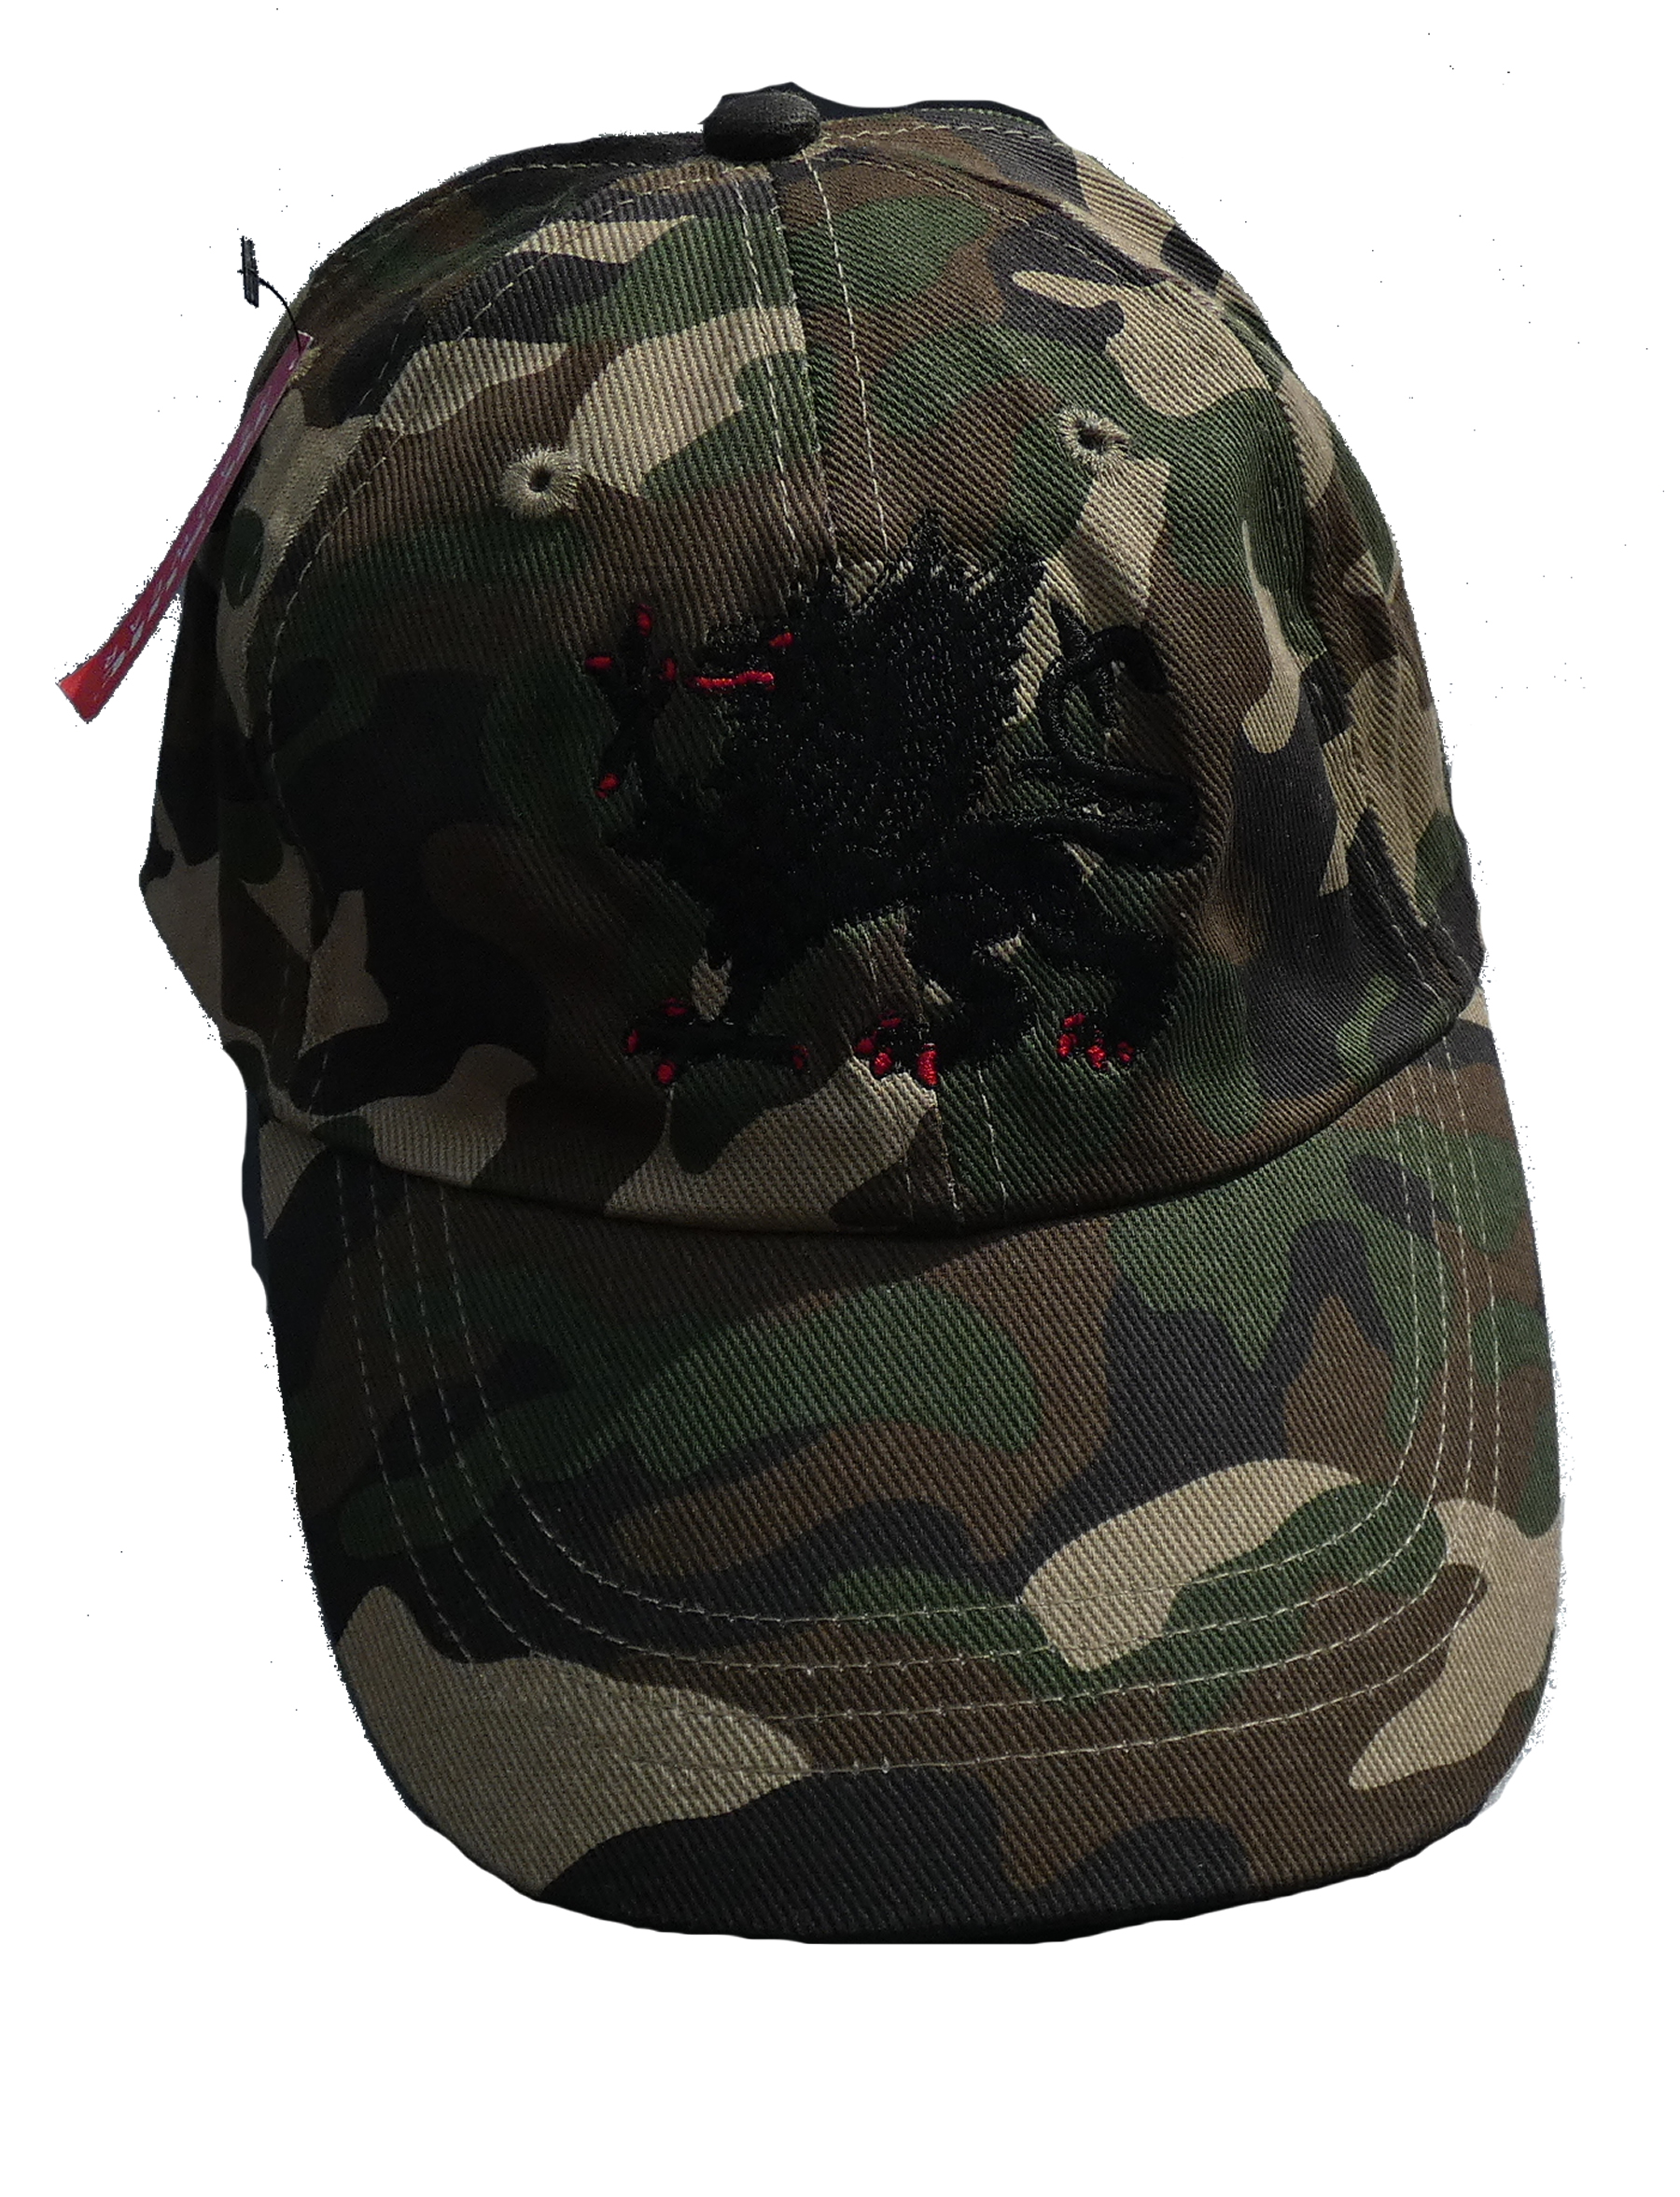 Camoflage Griffin cap